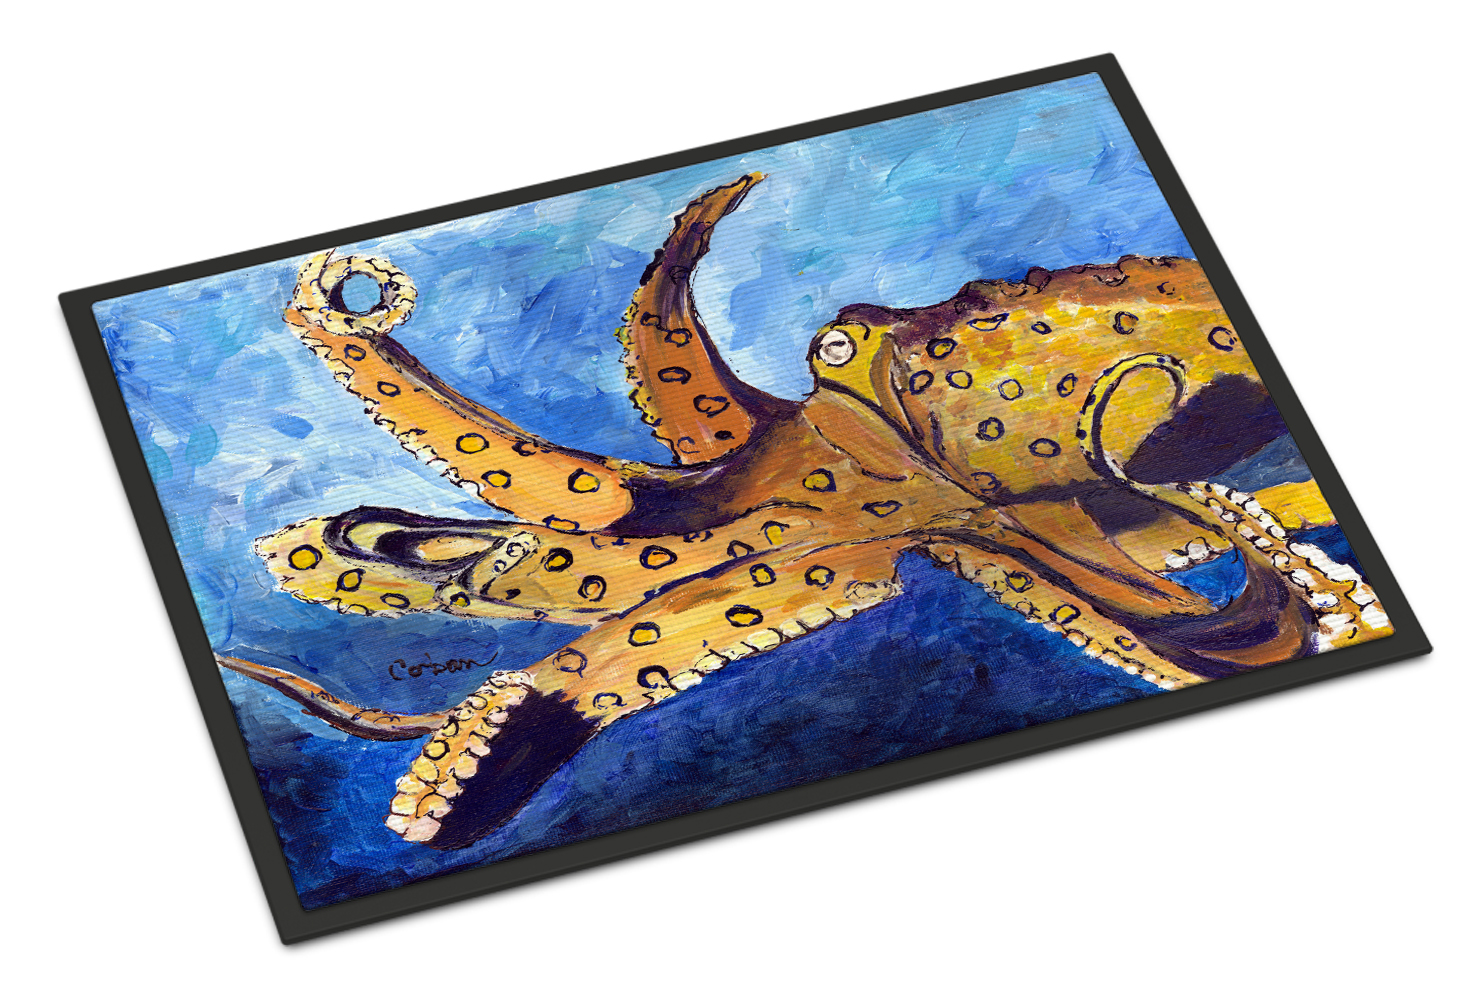 Carolines Treasures Octopus Floor Mat 19 H x 27 W Multicolor